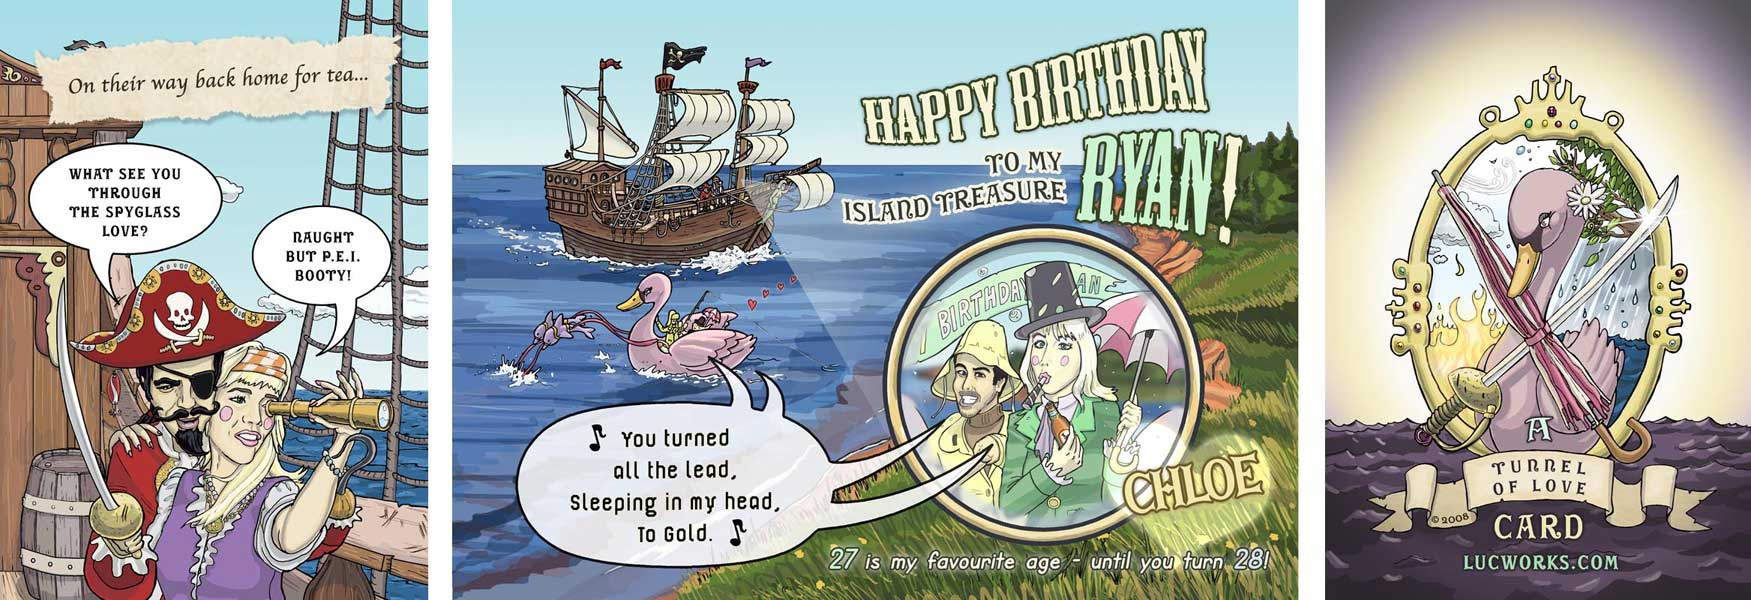 Personalized Birthday Cards – Pirate Birthday Card Sayings